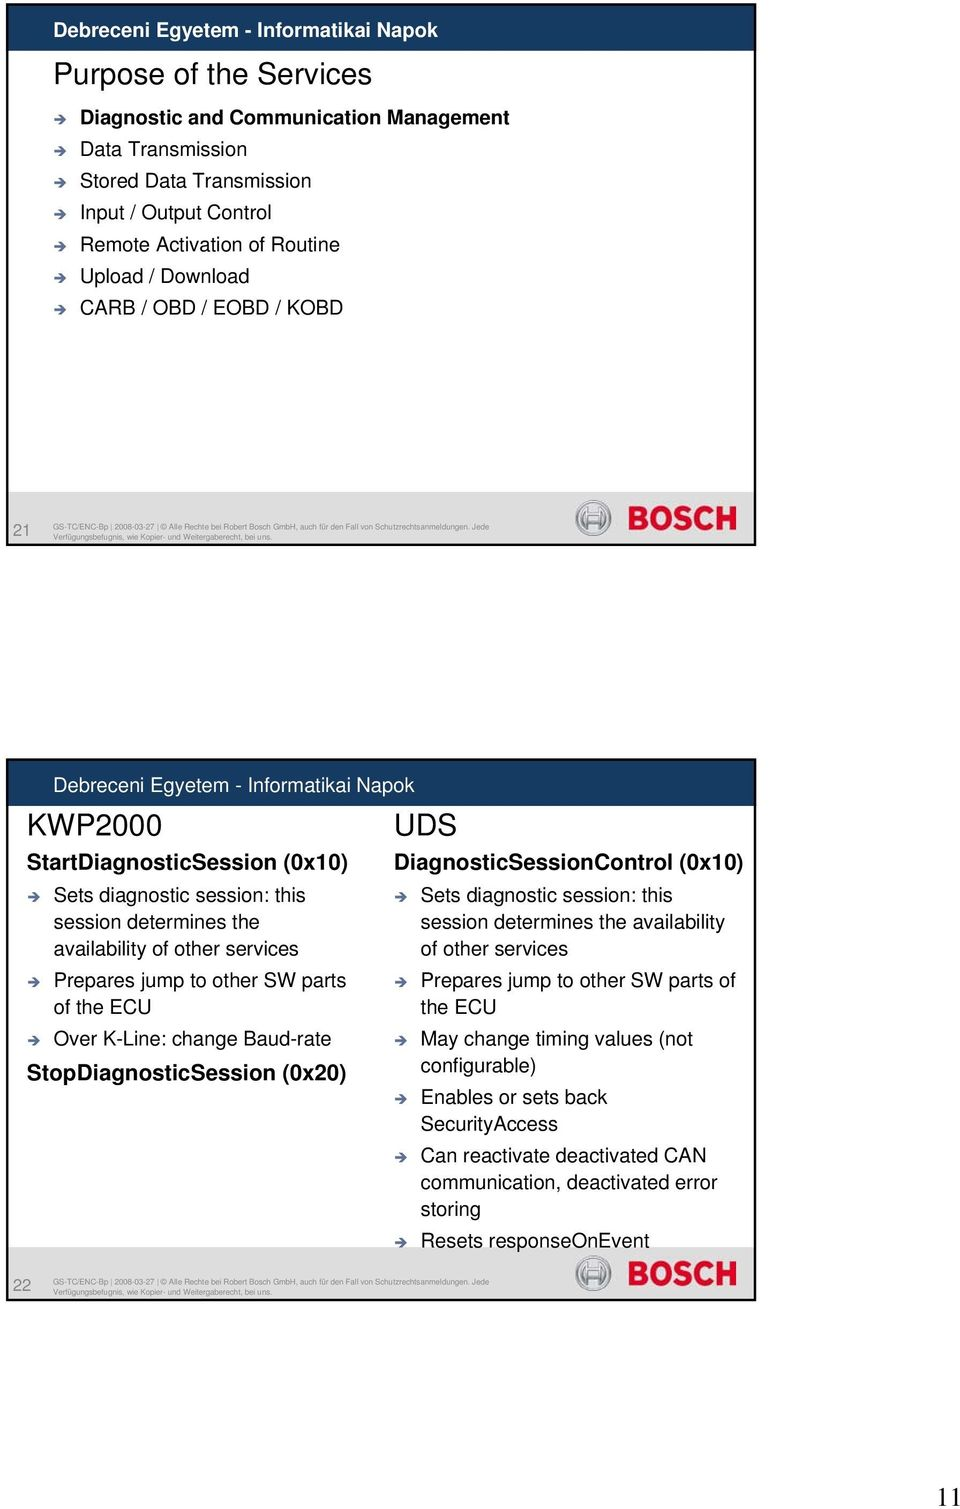 change Baud-rate StopDiagnosticSession (0x20) UDS DiagnosticSessionControl (0x10) Sets diagnostic session: this session determines the availability of other services Prepares jump to other SW